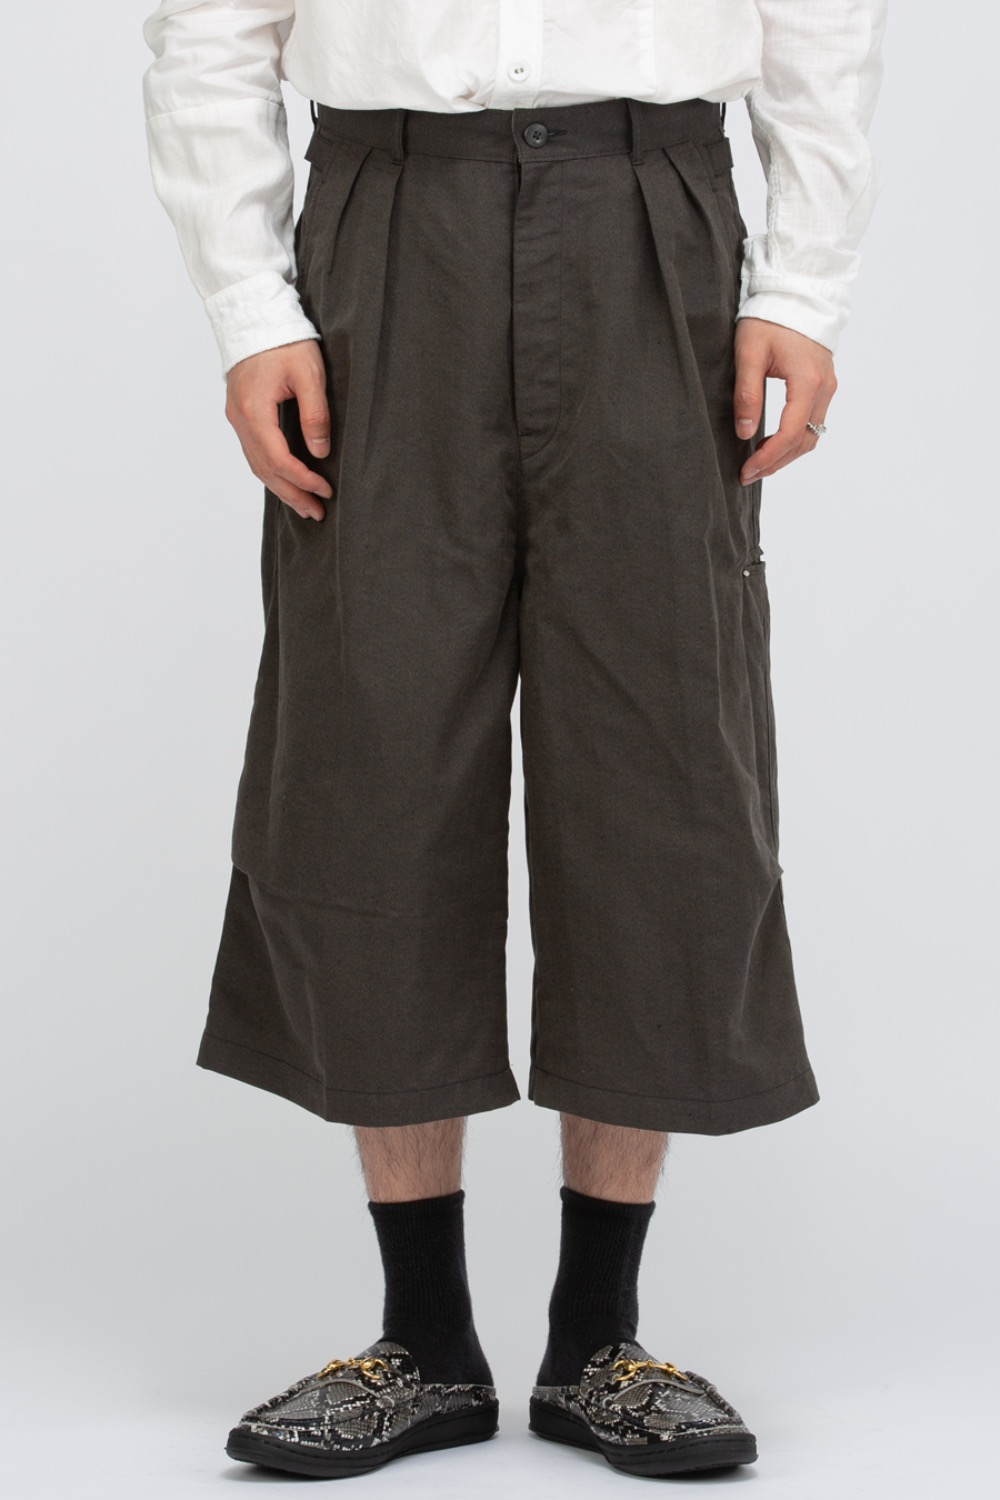 COTTON LINEN HERRINGBONE HIGH WATER SHORTS